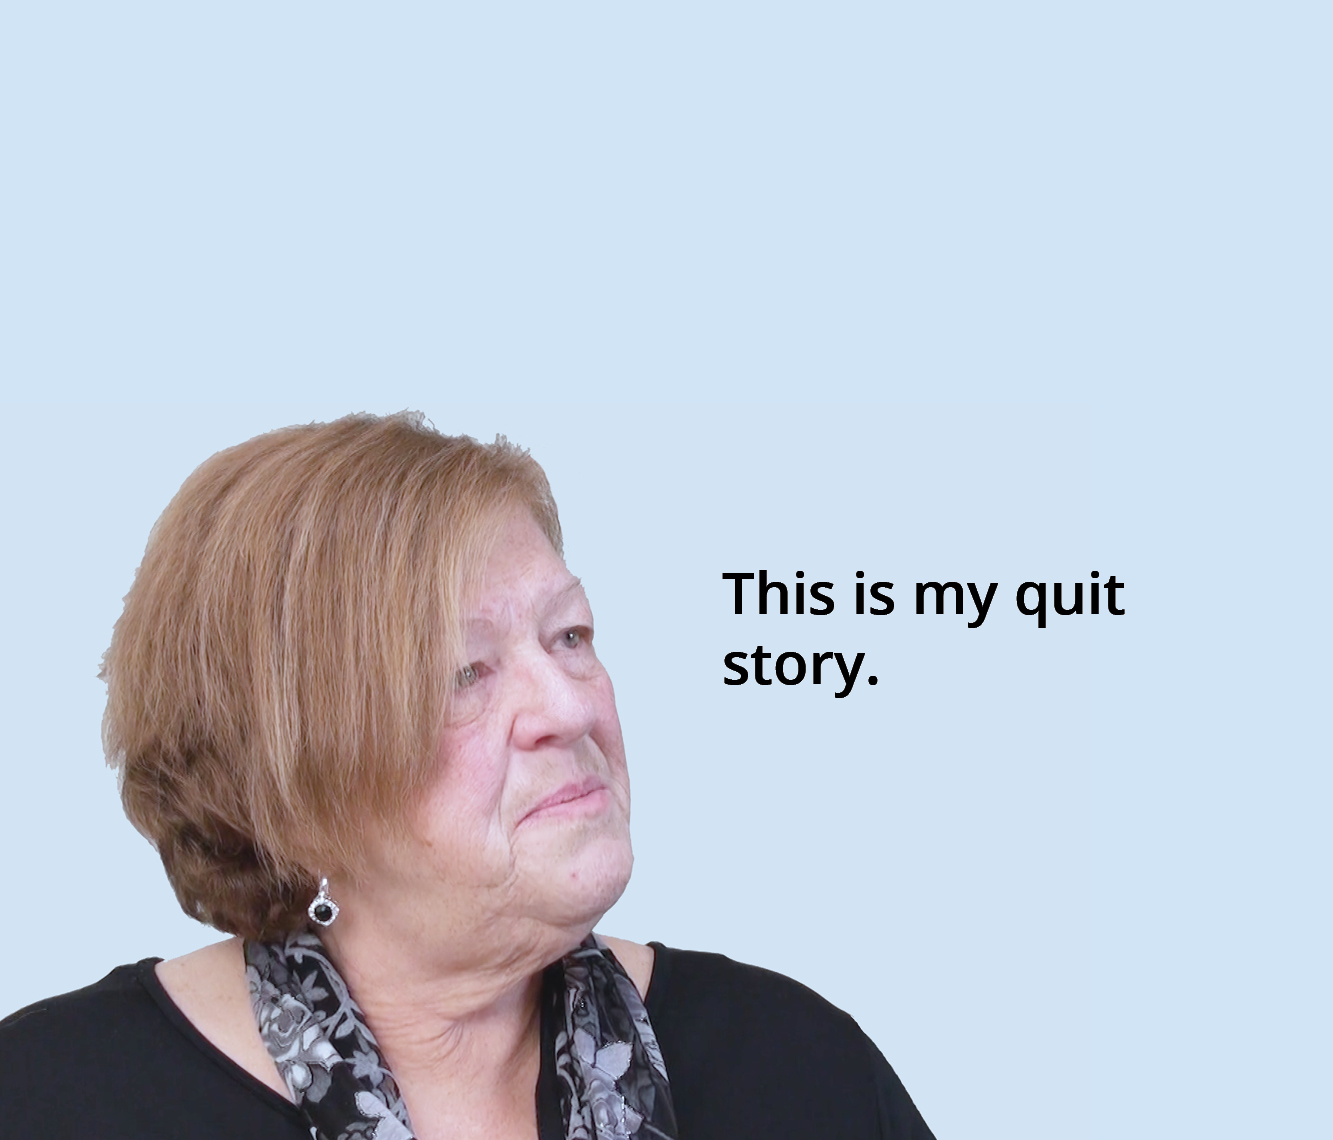 This is my quit story.